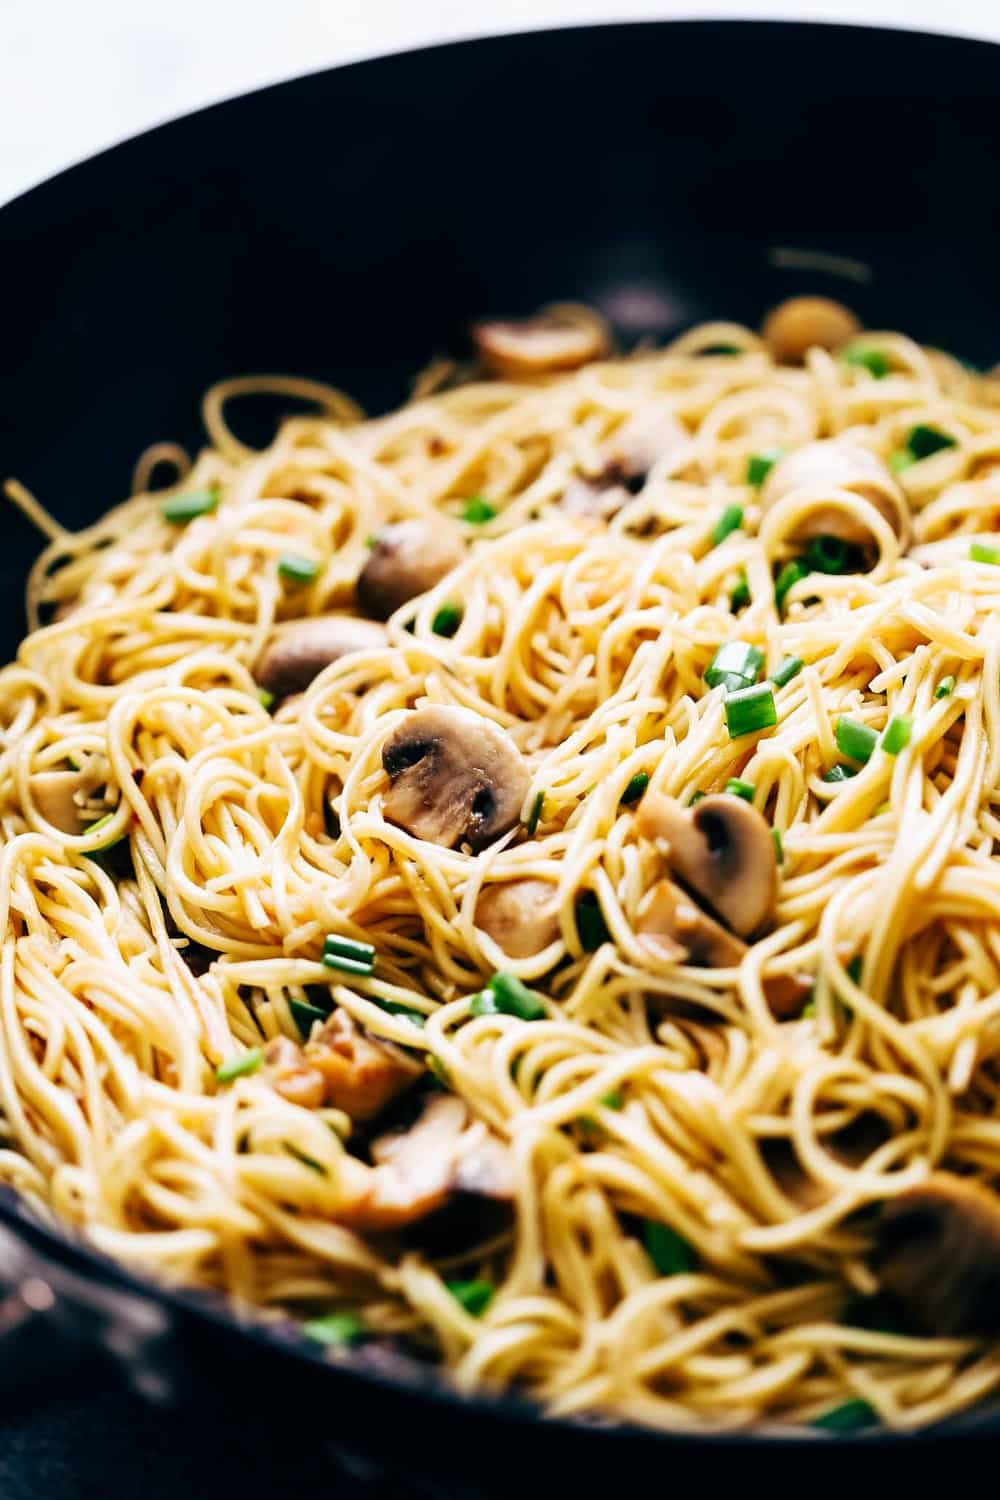 Closeup of garlic mushroom noodles in a wok